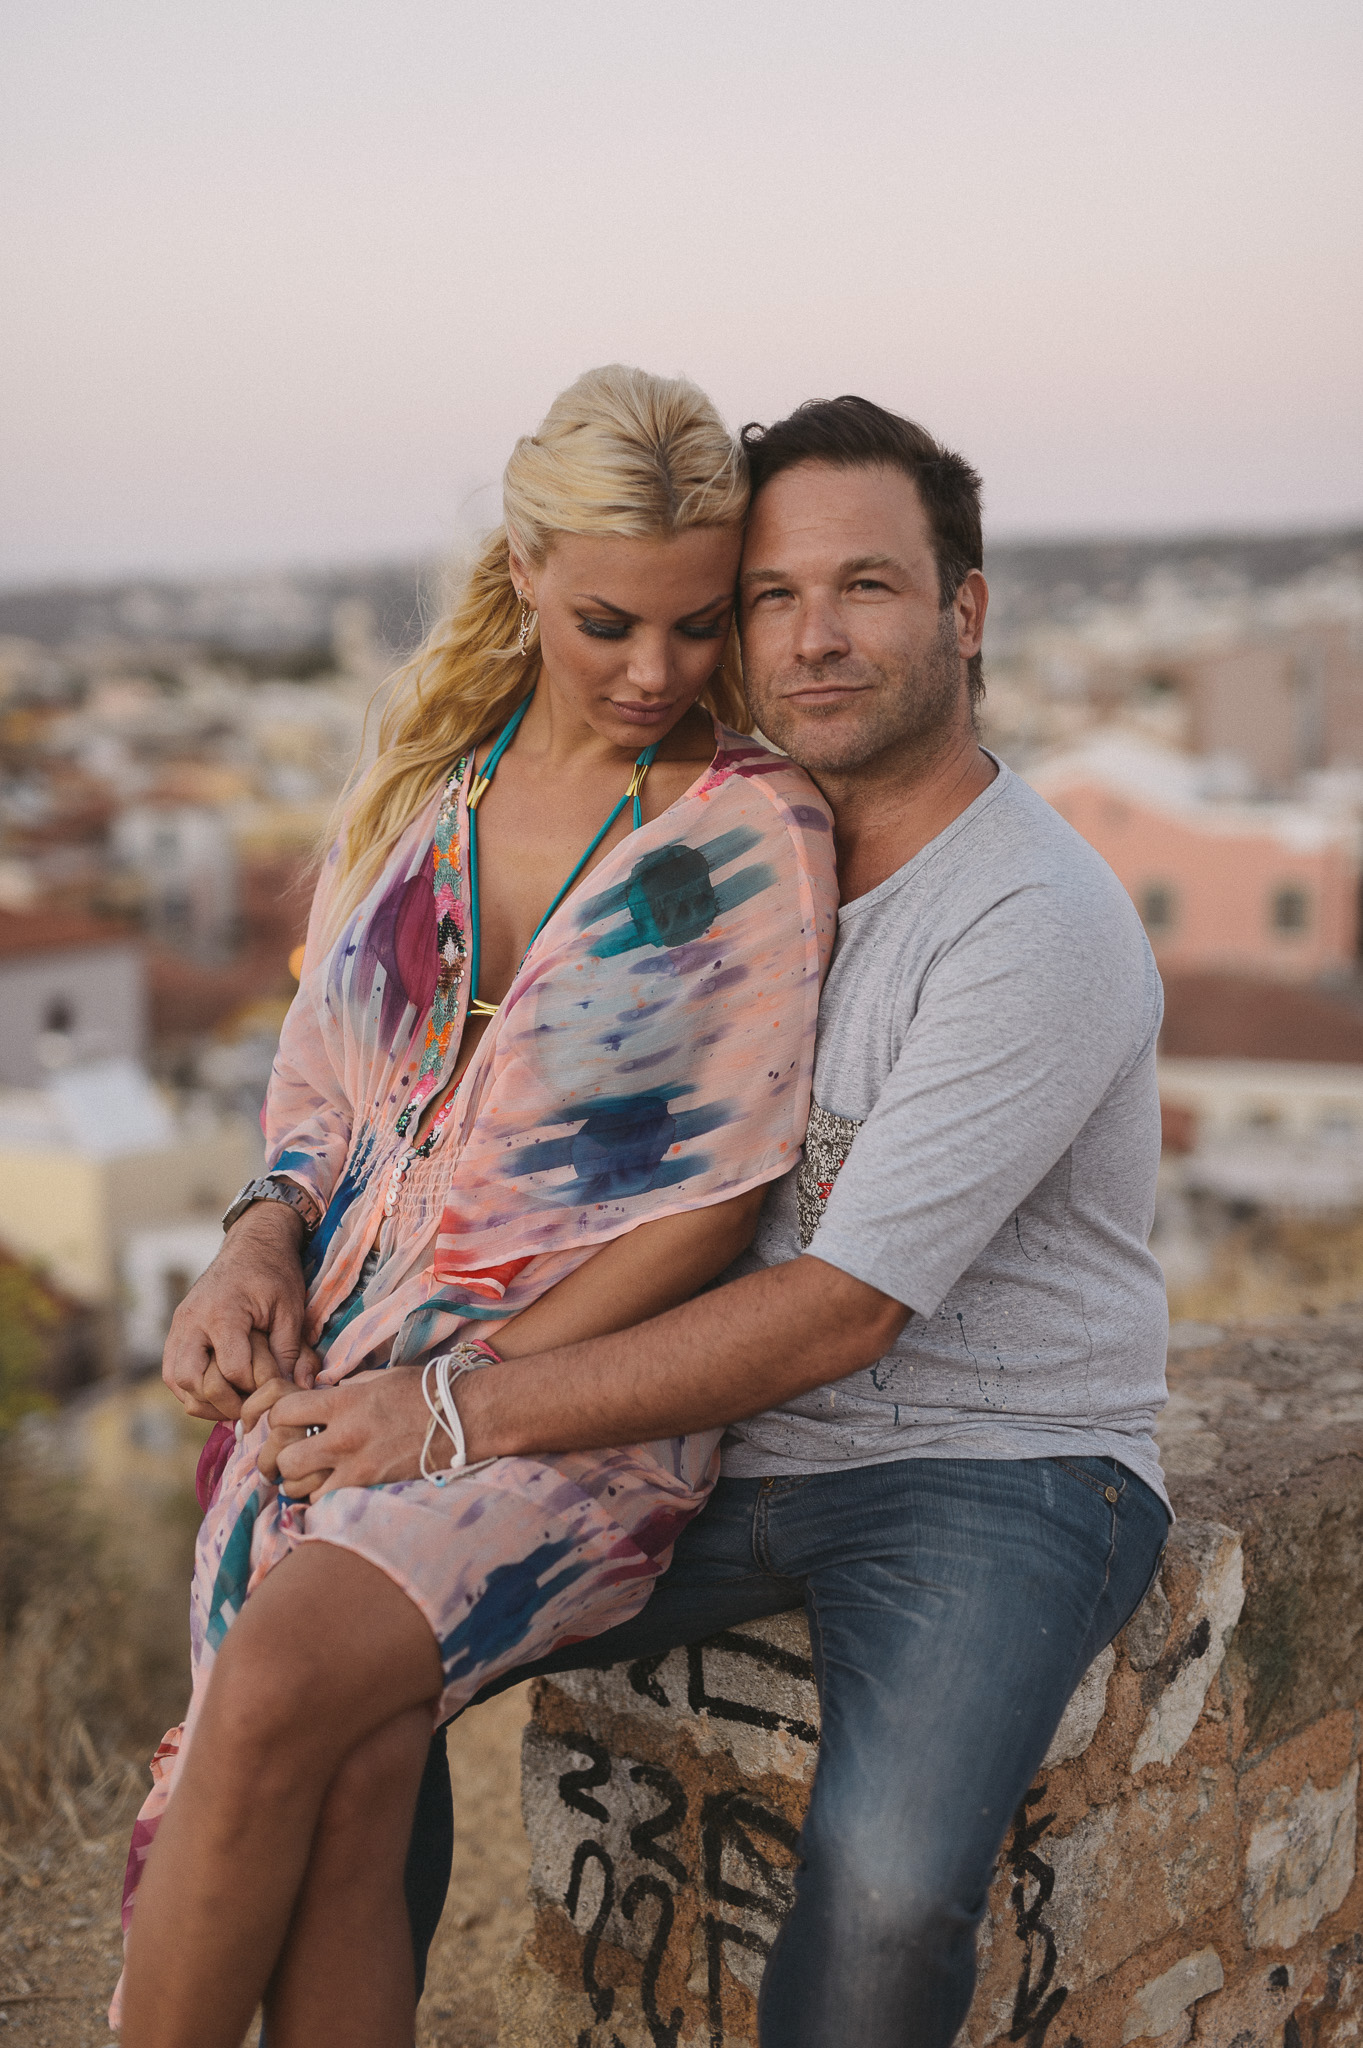 Alexandra Panagiotarou with Aristomenis Giannopoulos couples session in Chania Crete Greece